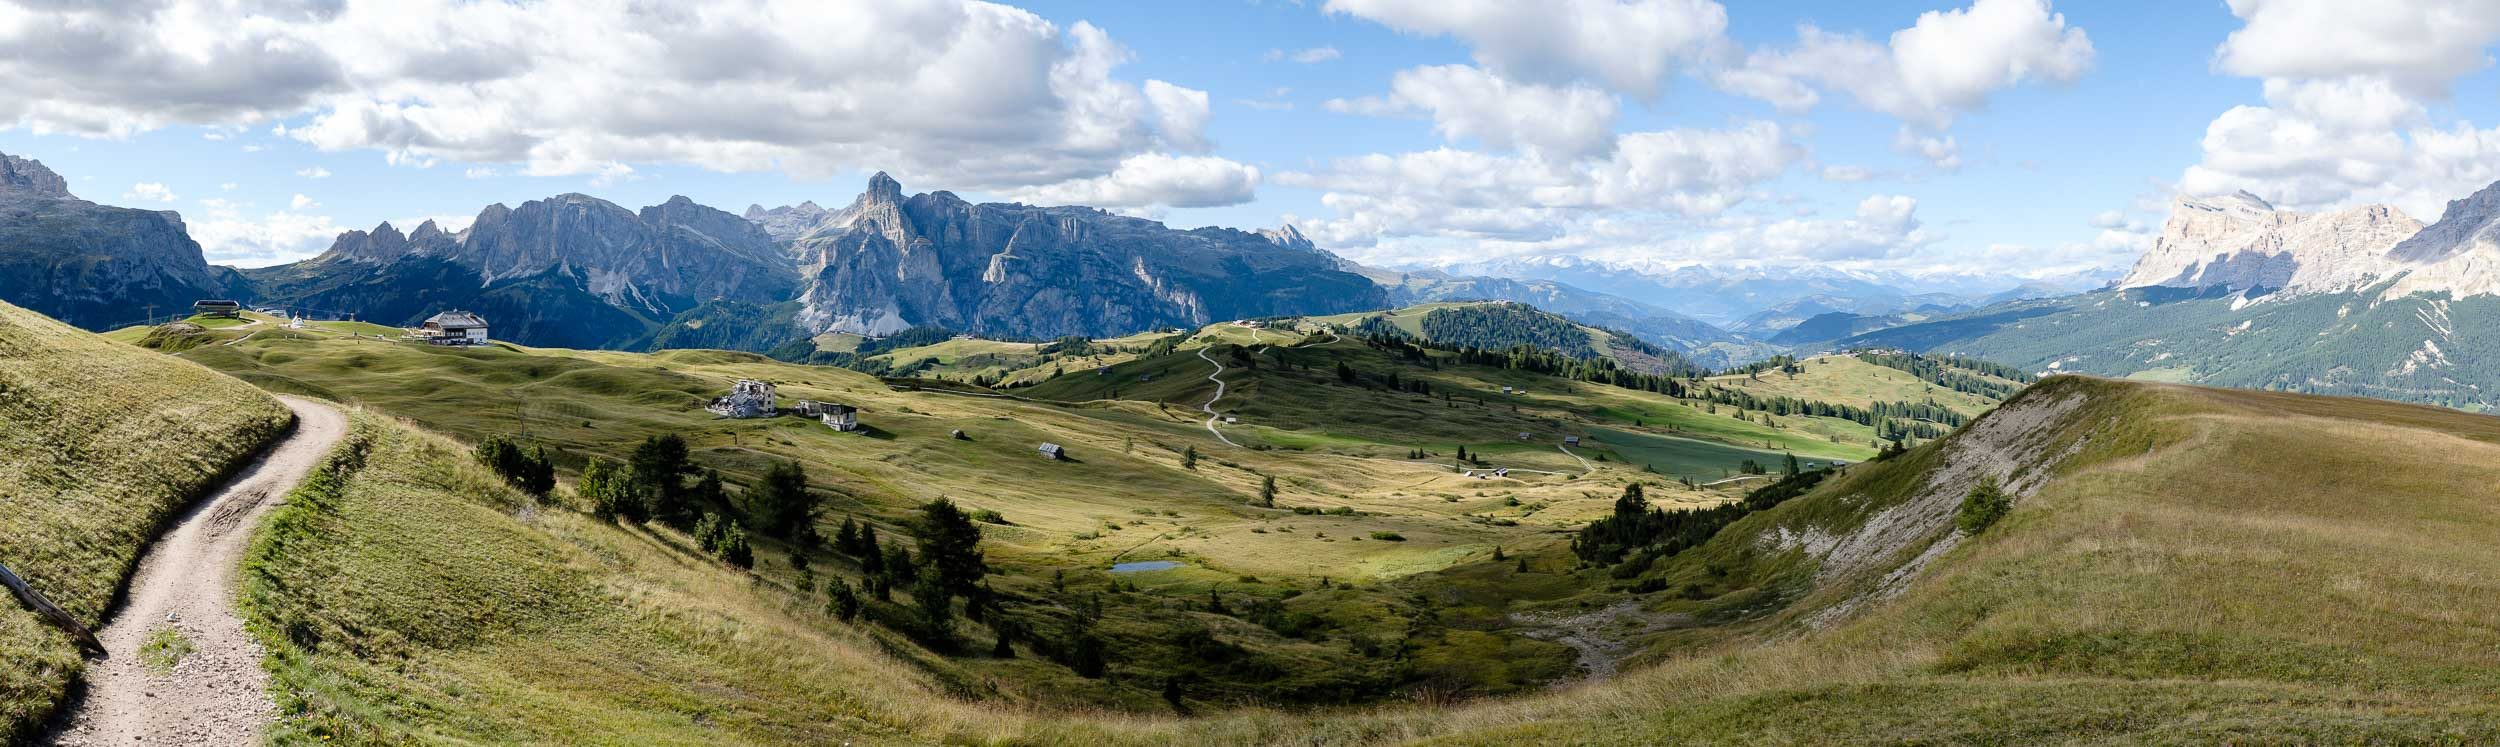 Panorama in den Dolomiten